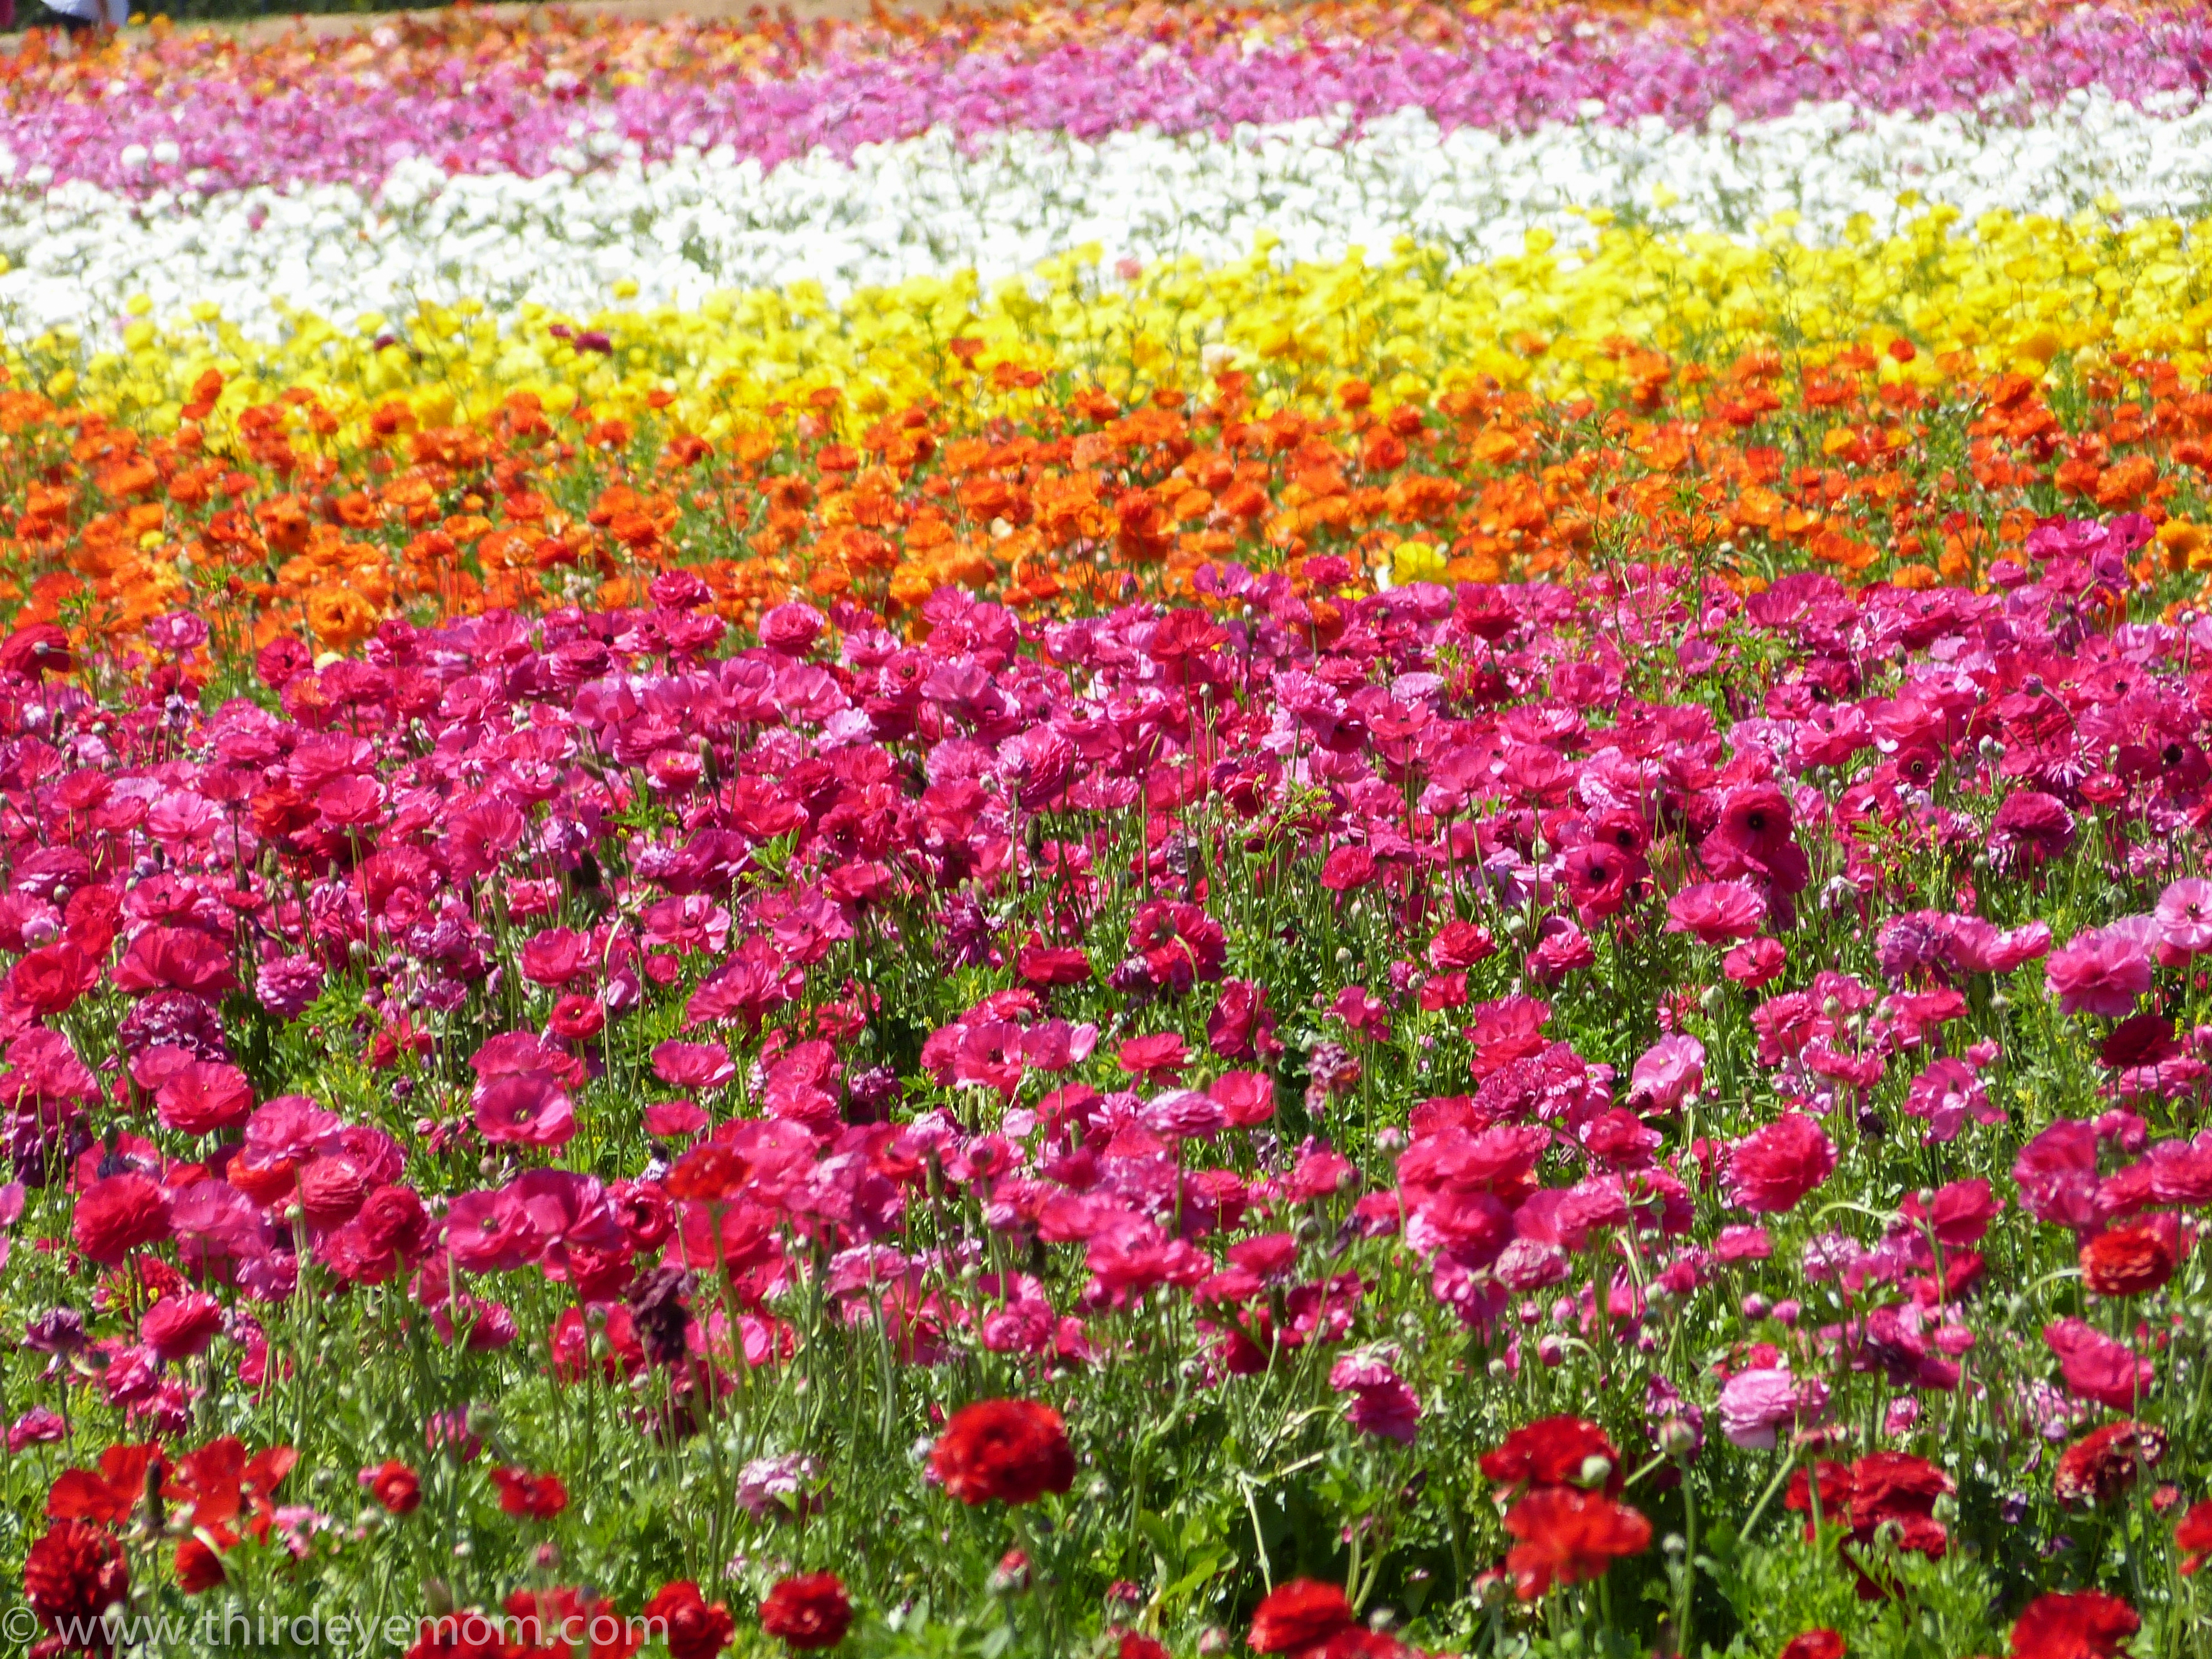 An afternoon at the Carlsbad Flower Fields